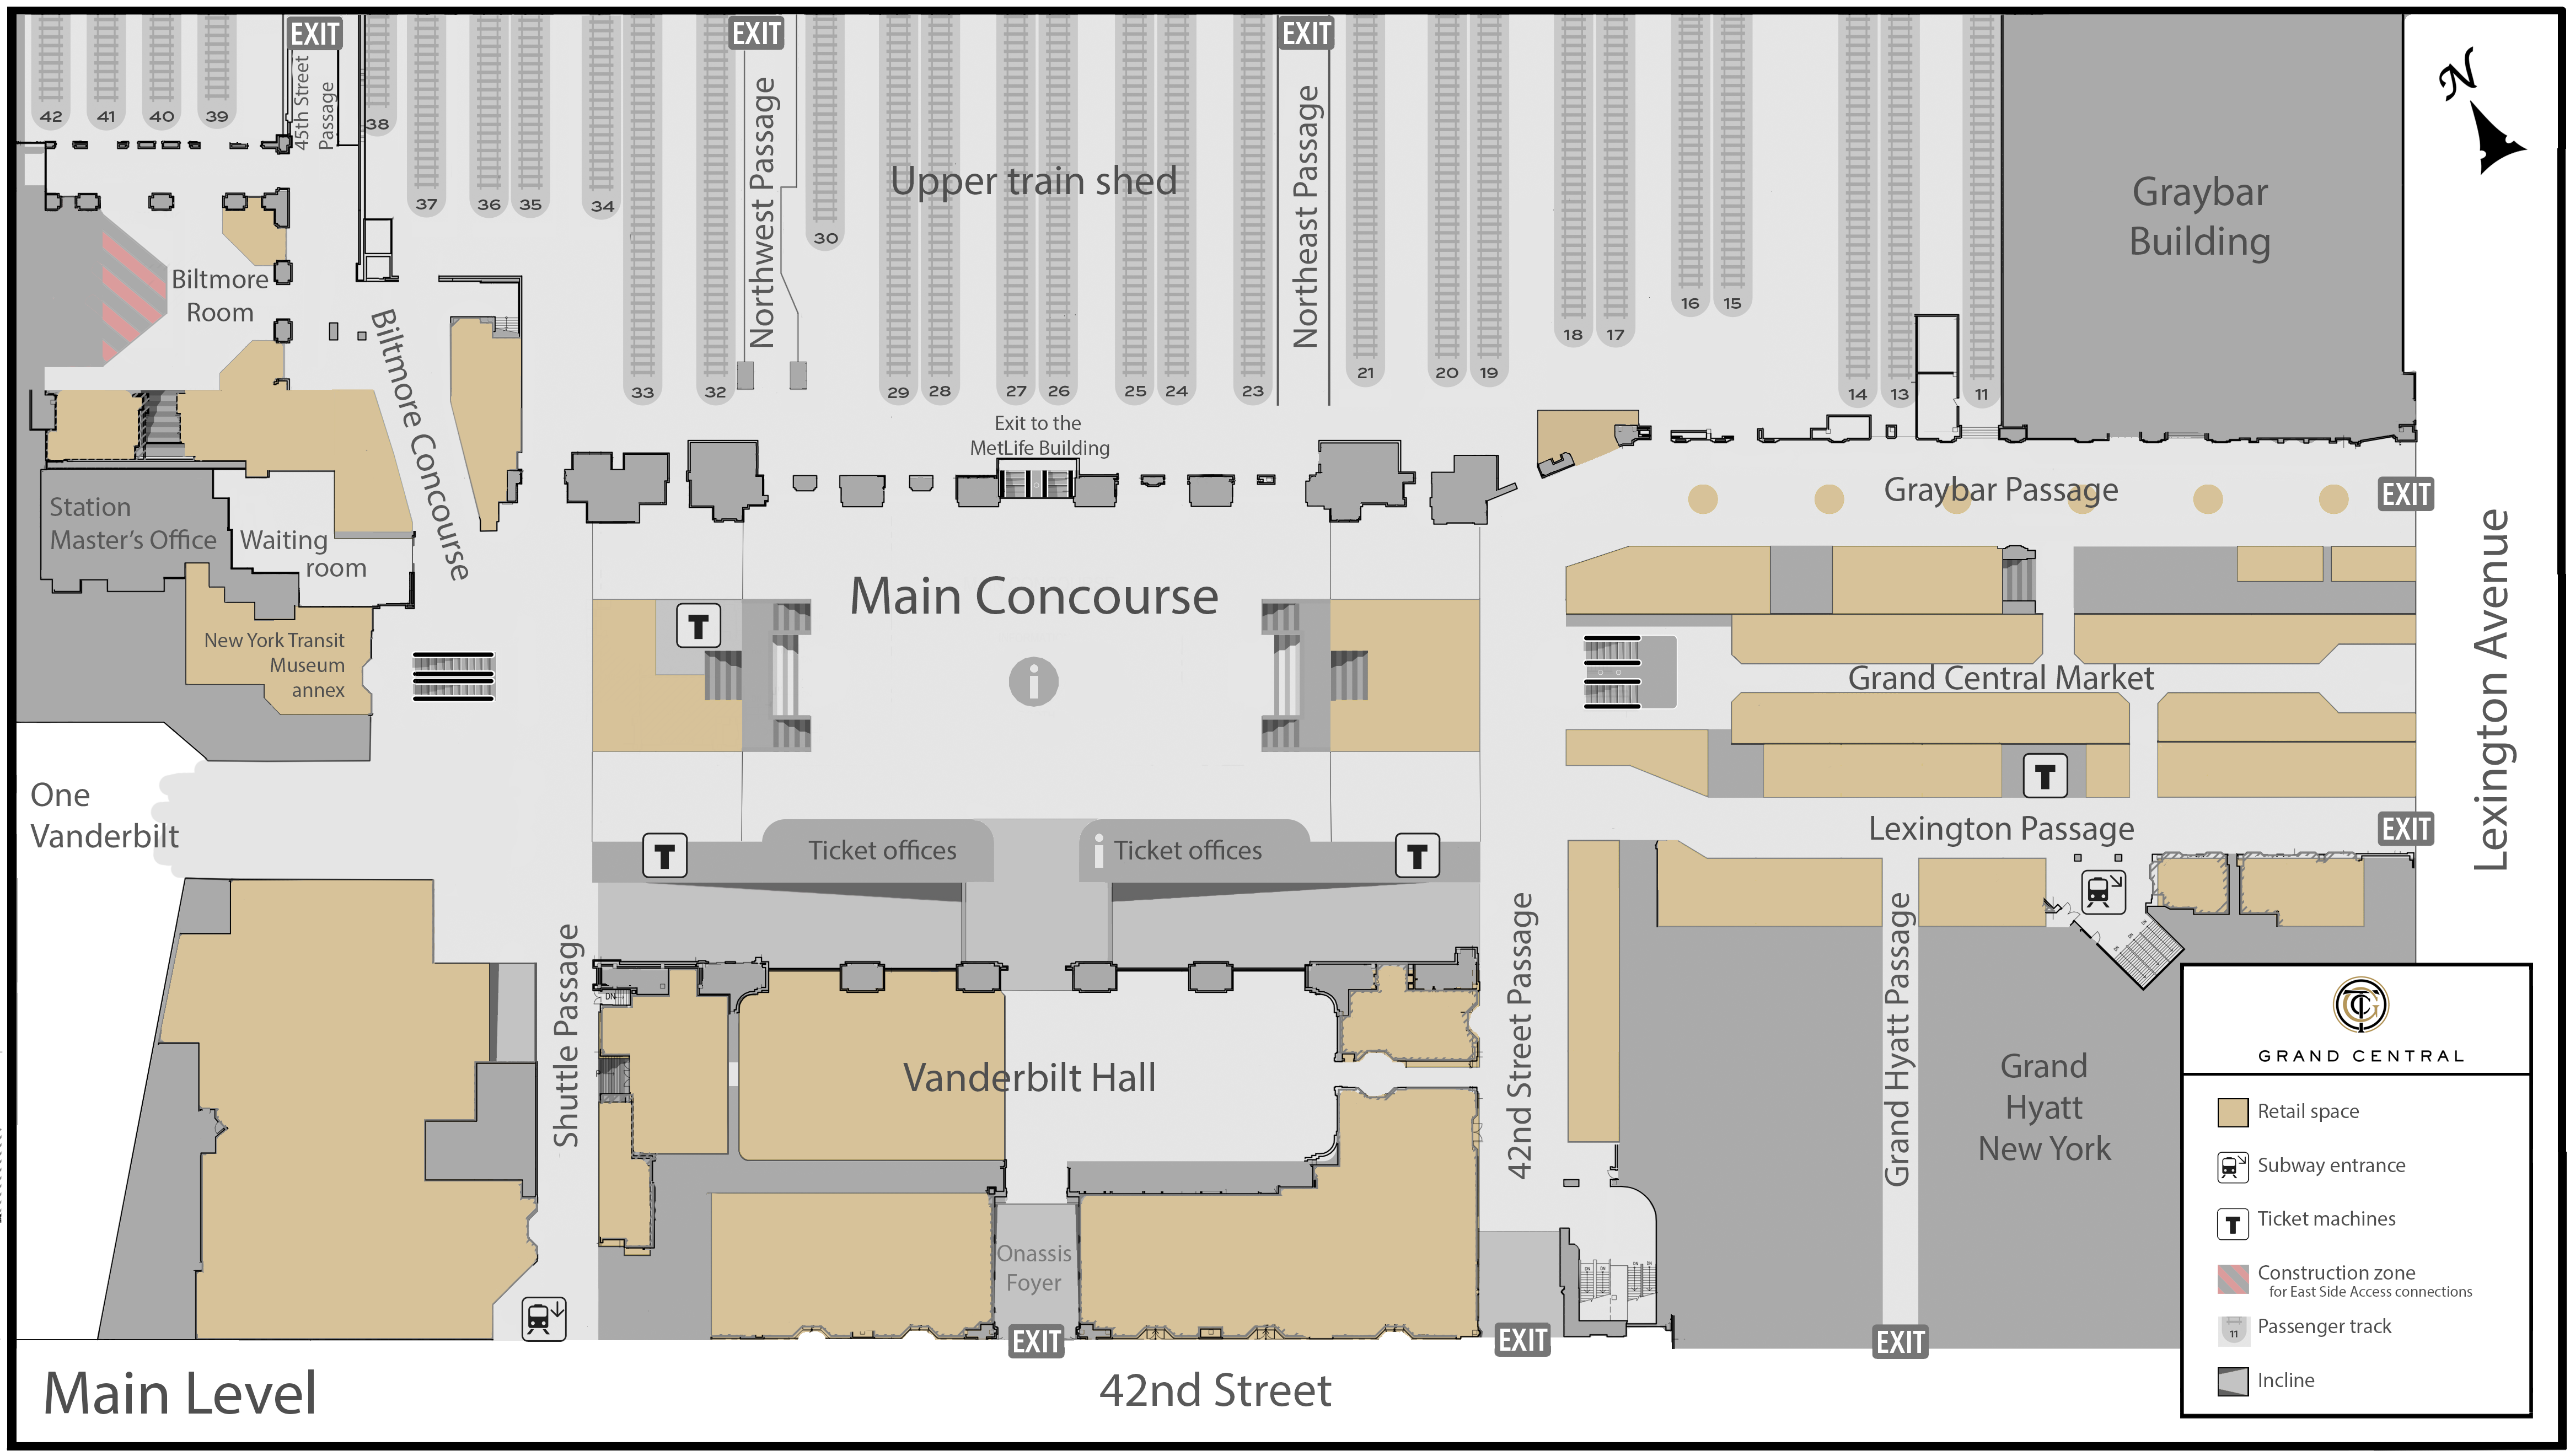 Grand Central Map File:Grand Central map.png   Wikimedia Commons